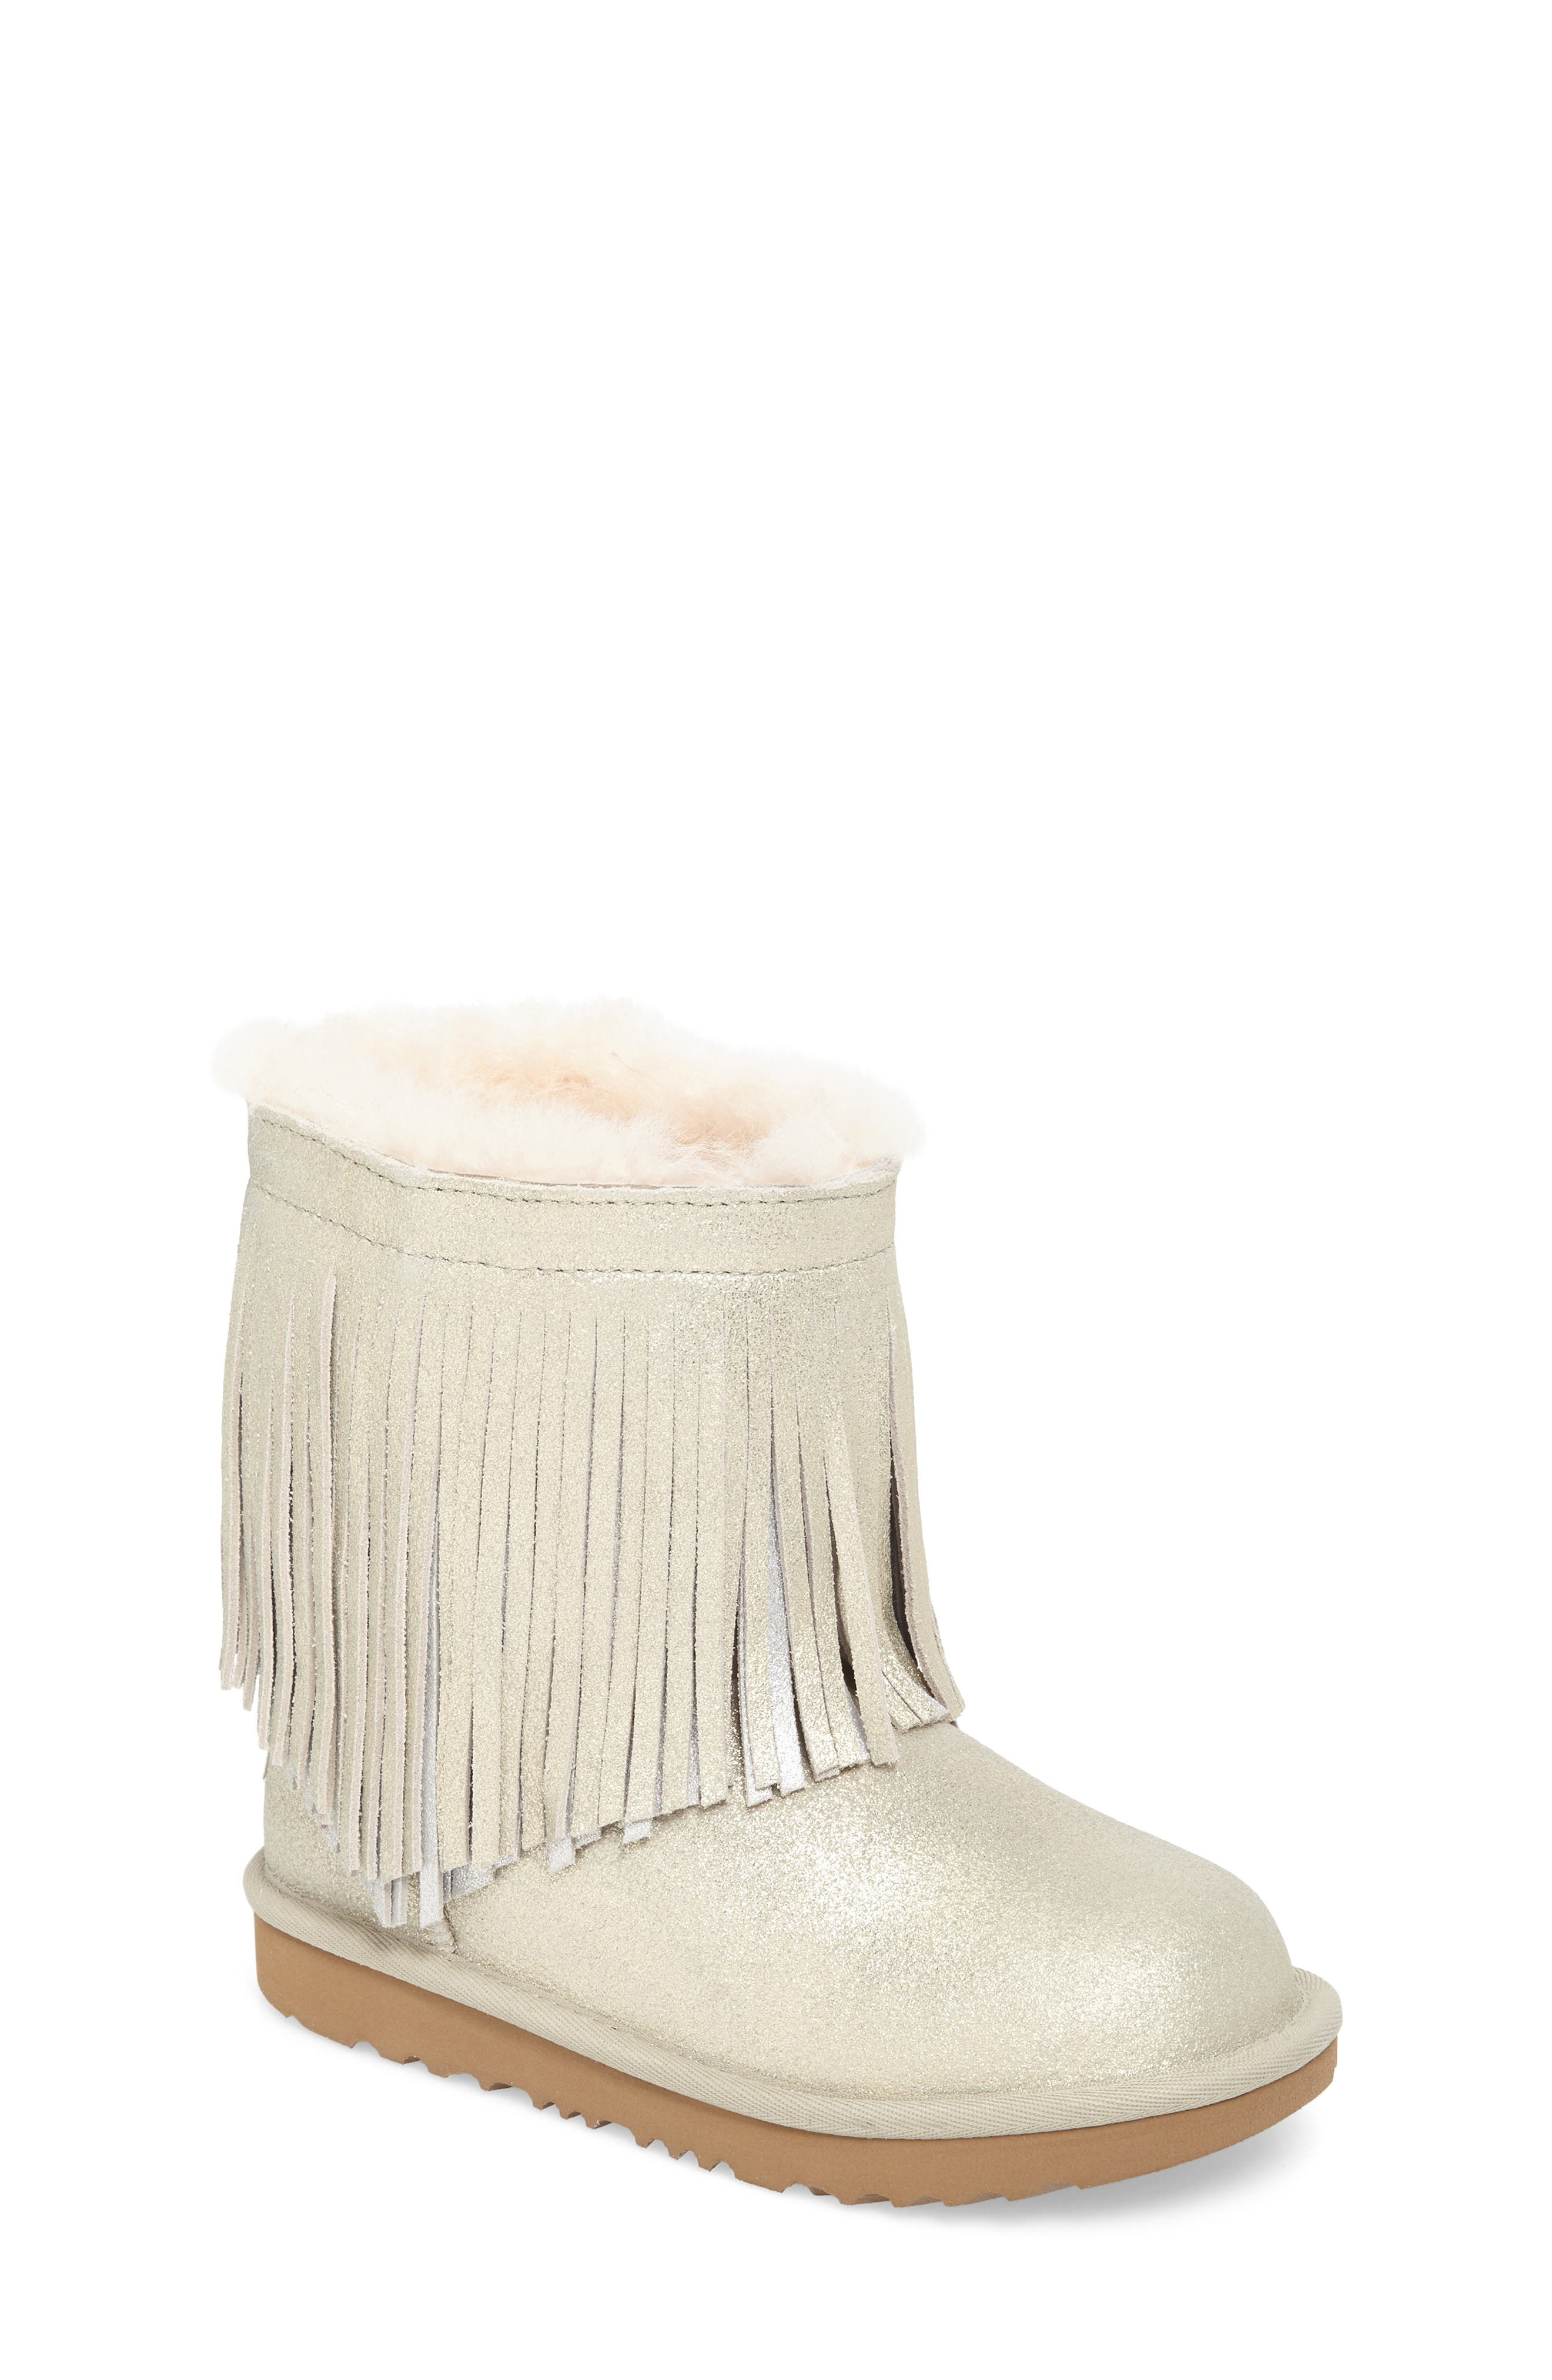 baby ugg boots nordstrom